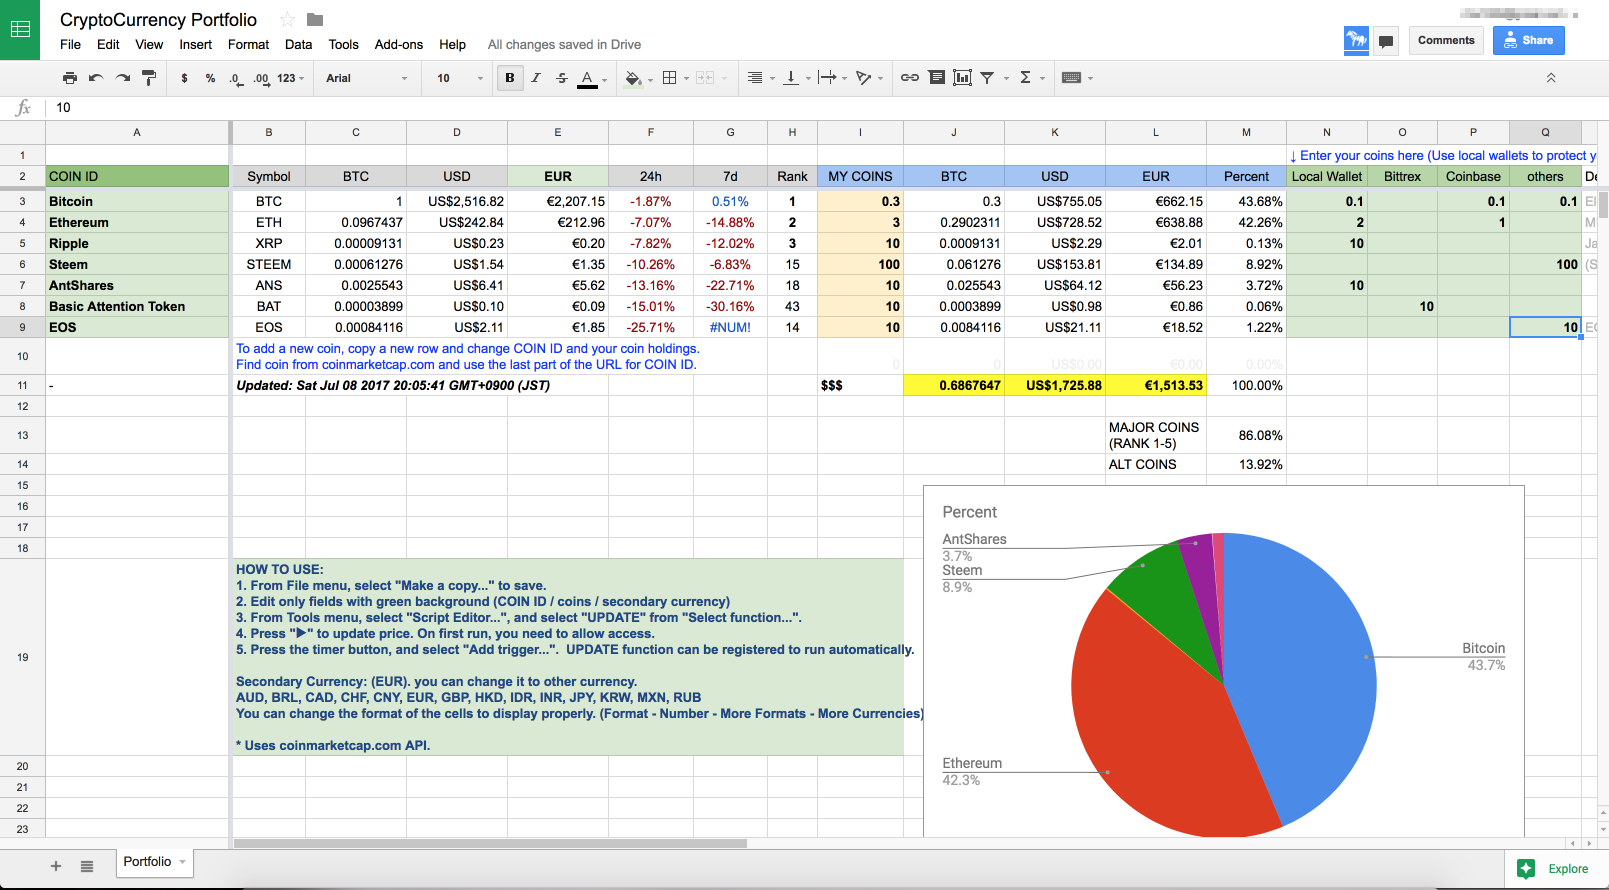 Google Spreadsheet Maken In Cryptocurrency Portfolio Template For Google Sheets — Steemit